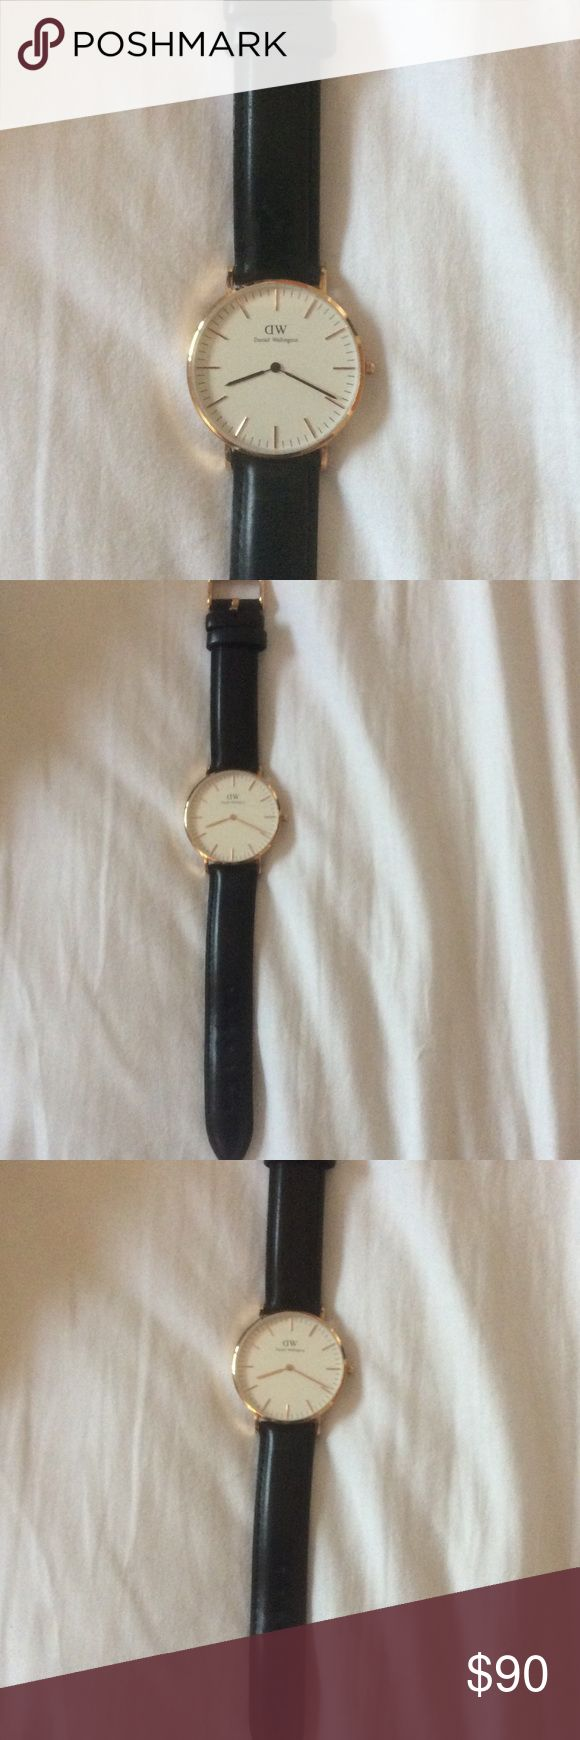 Authentic Daniel Wellington watch ❤️❤️ Gently used twice. Price firm Daniel Wellington Accessories Watches